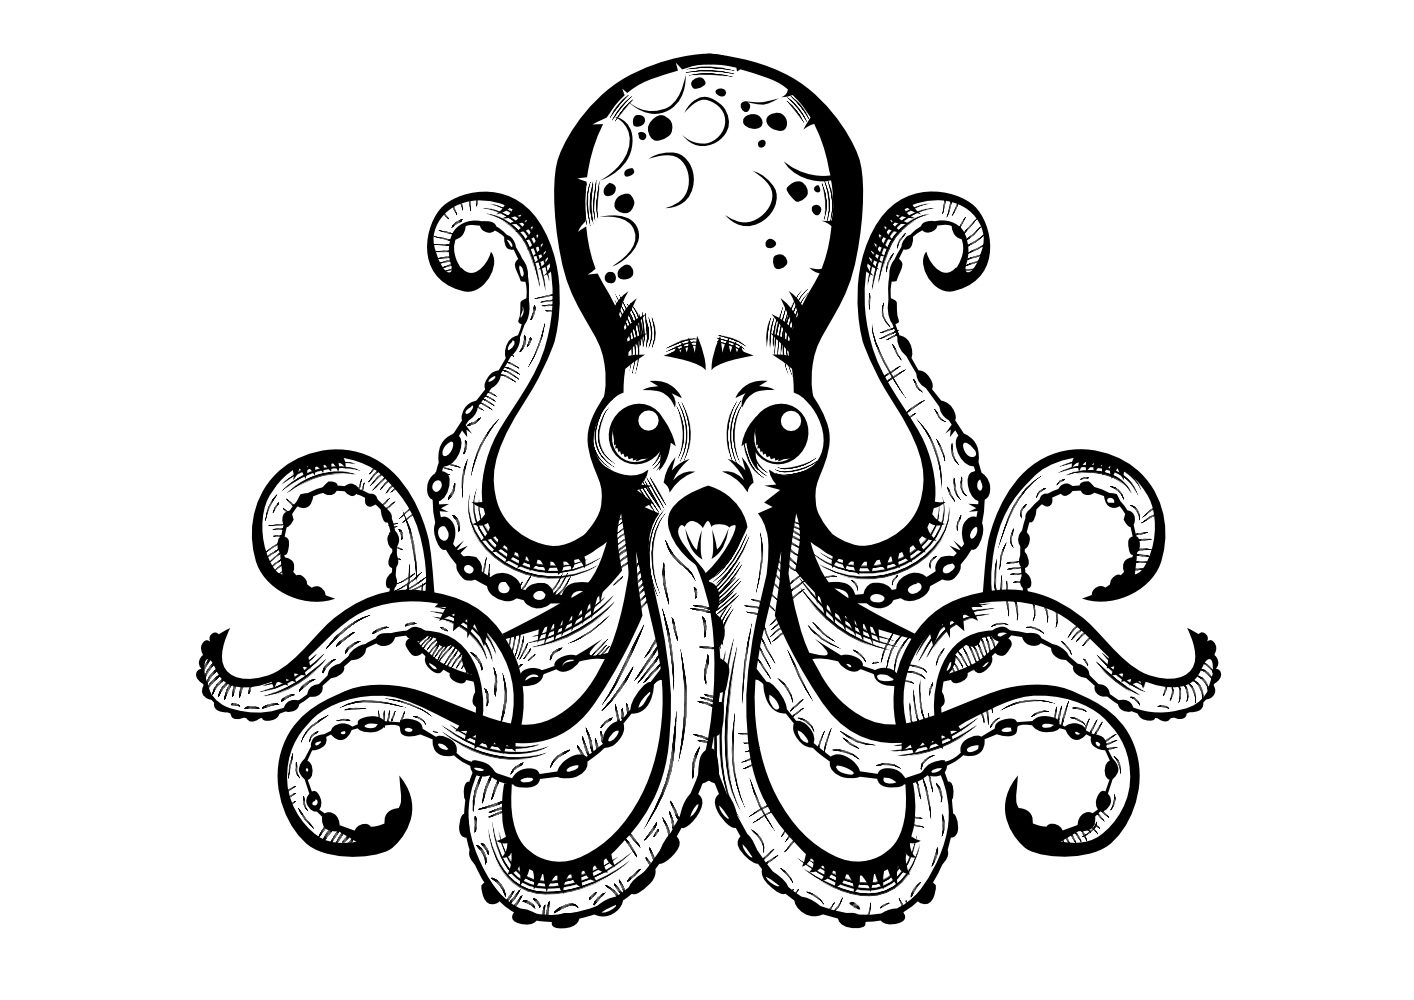 octupus drawing vintage octopus drawing at getdrawings free download drawing octupus